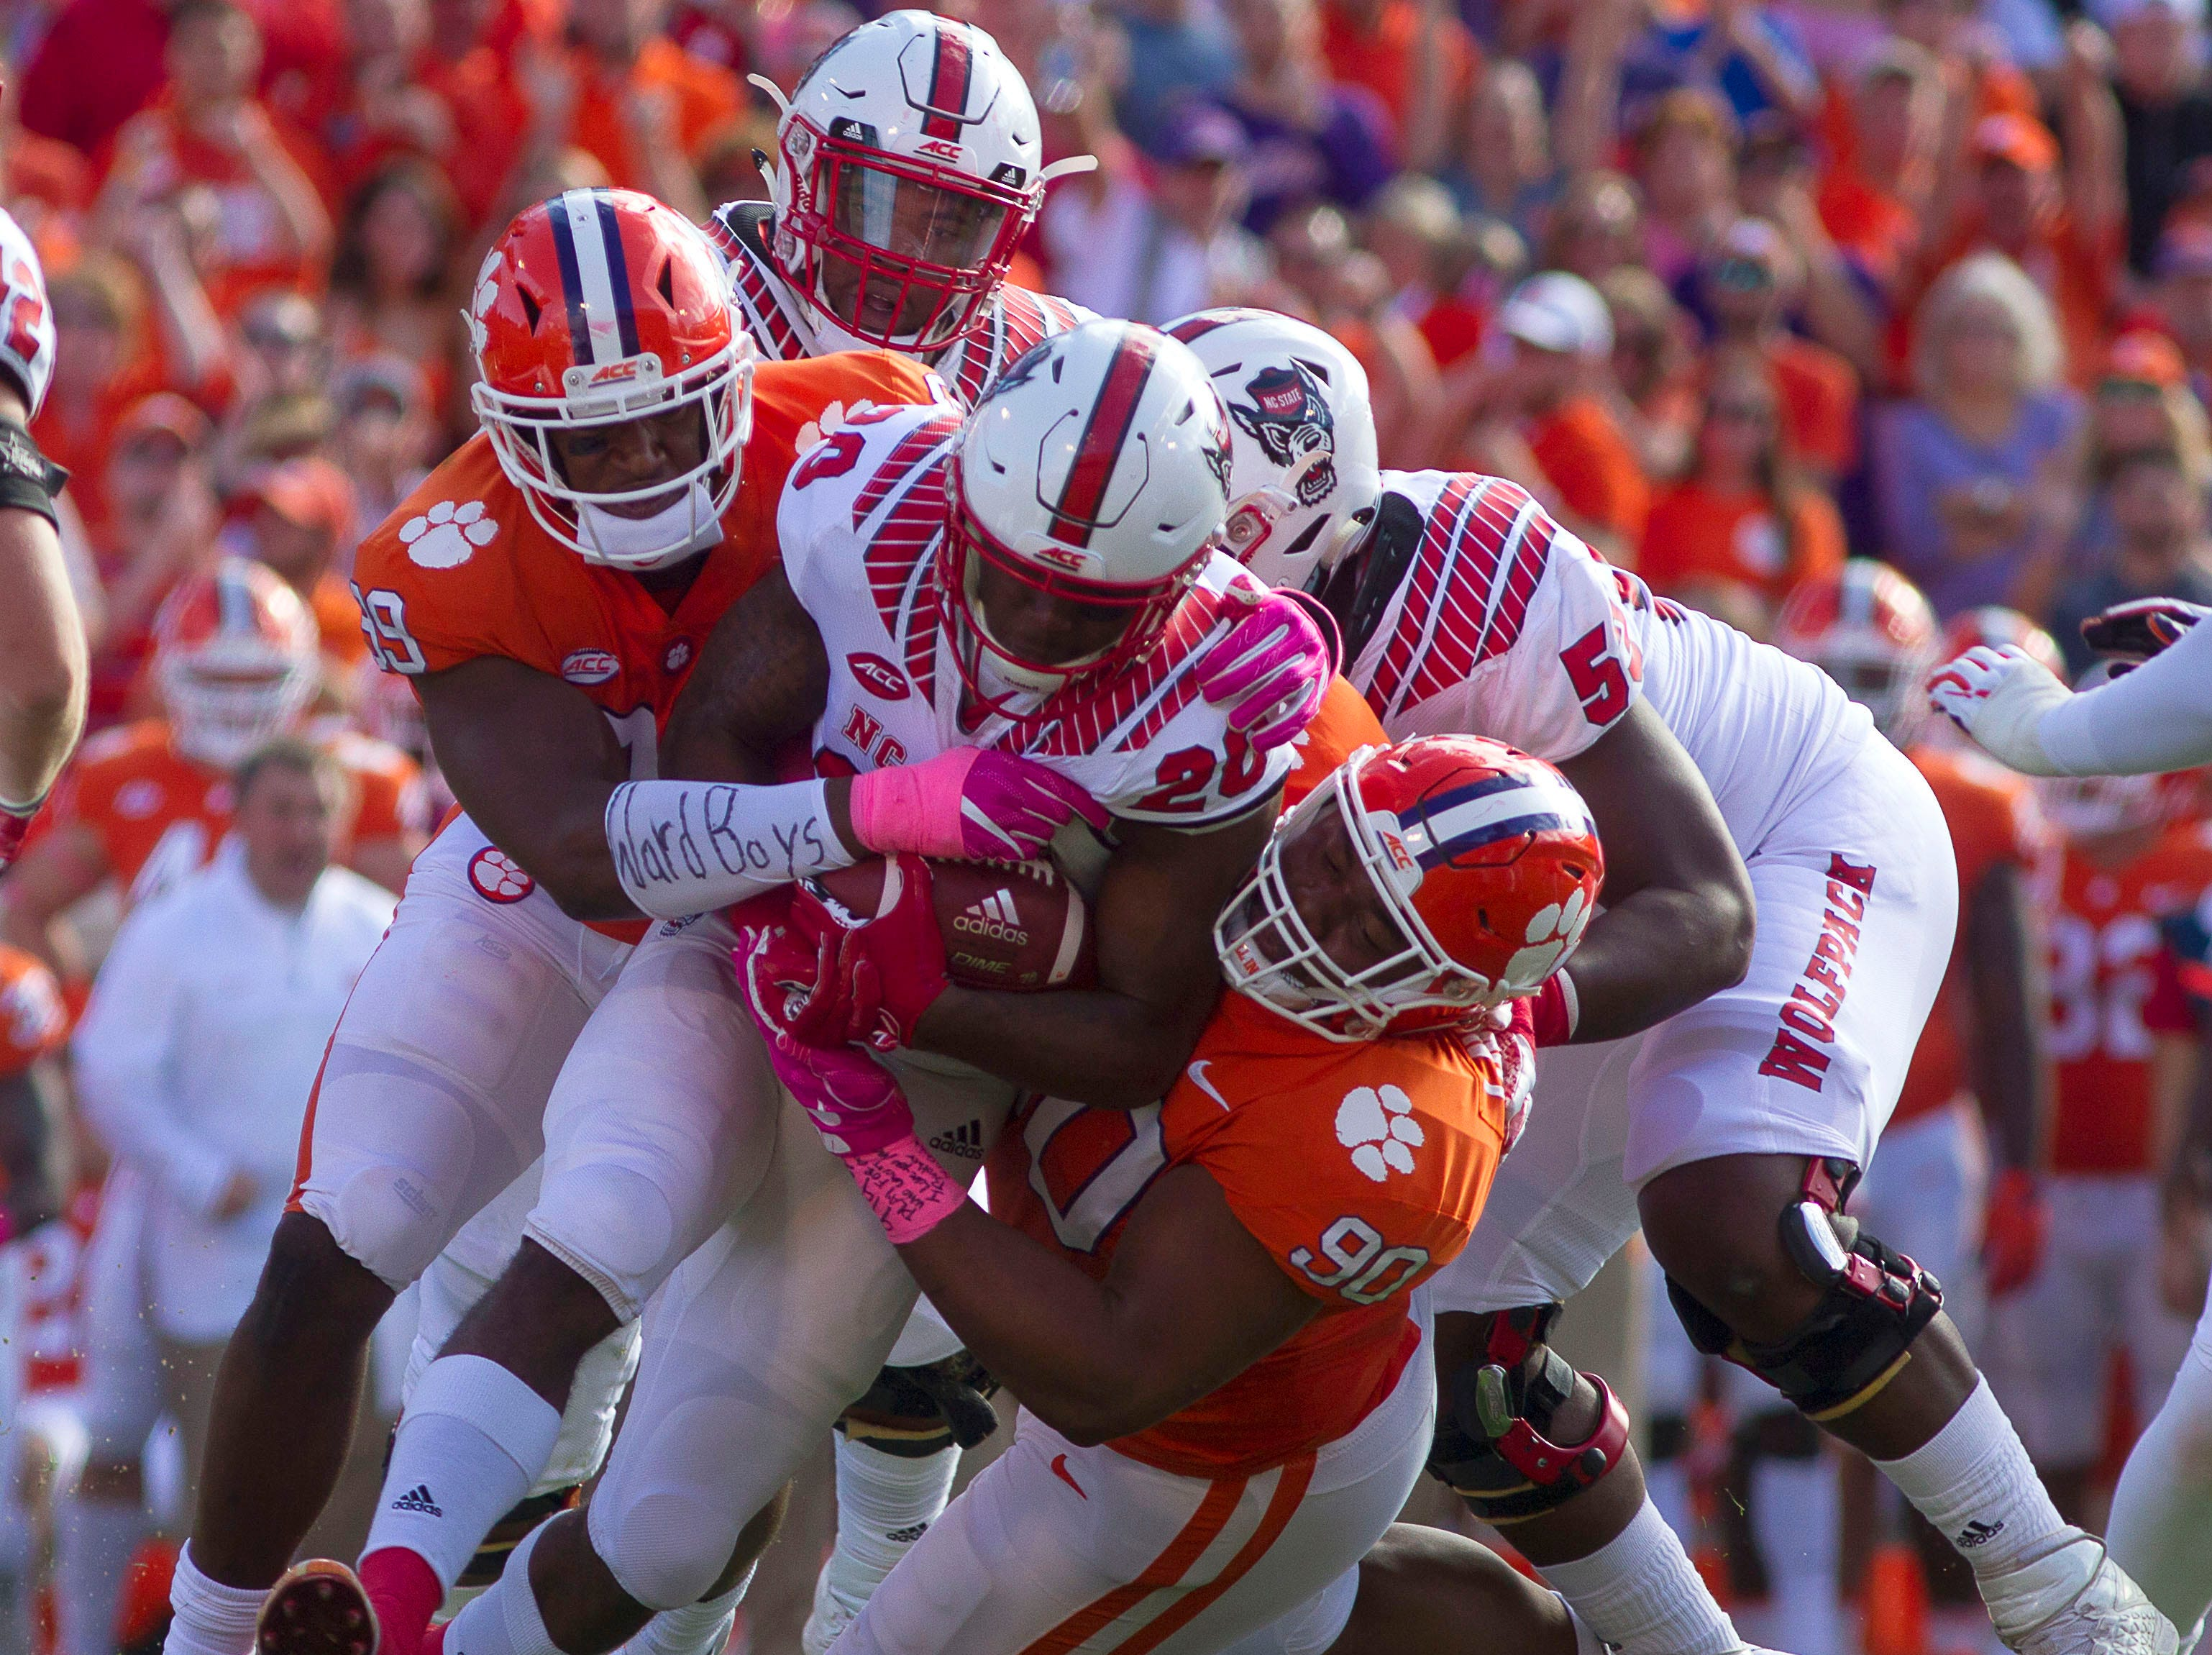 North Carolina State Wolfpack running back Ricky Person Jr. (20) is brought down by Clemson Tigers defensive tackle Dexter Lawrence (90) and defensive end Clelin Ferrell (99) during the second quarter of the game at Clemson Memorial Stadium.